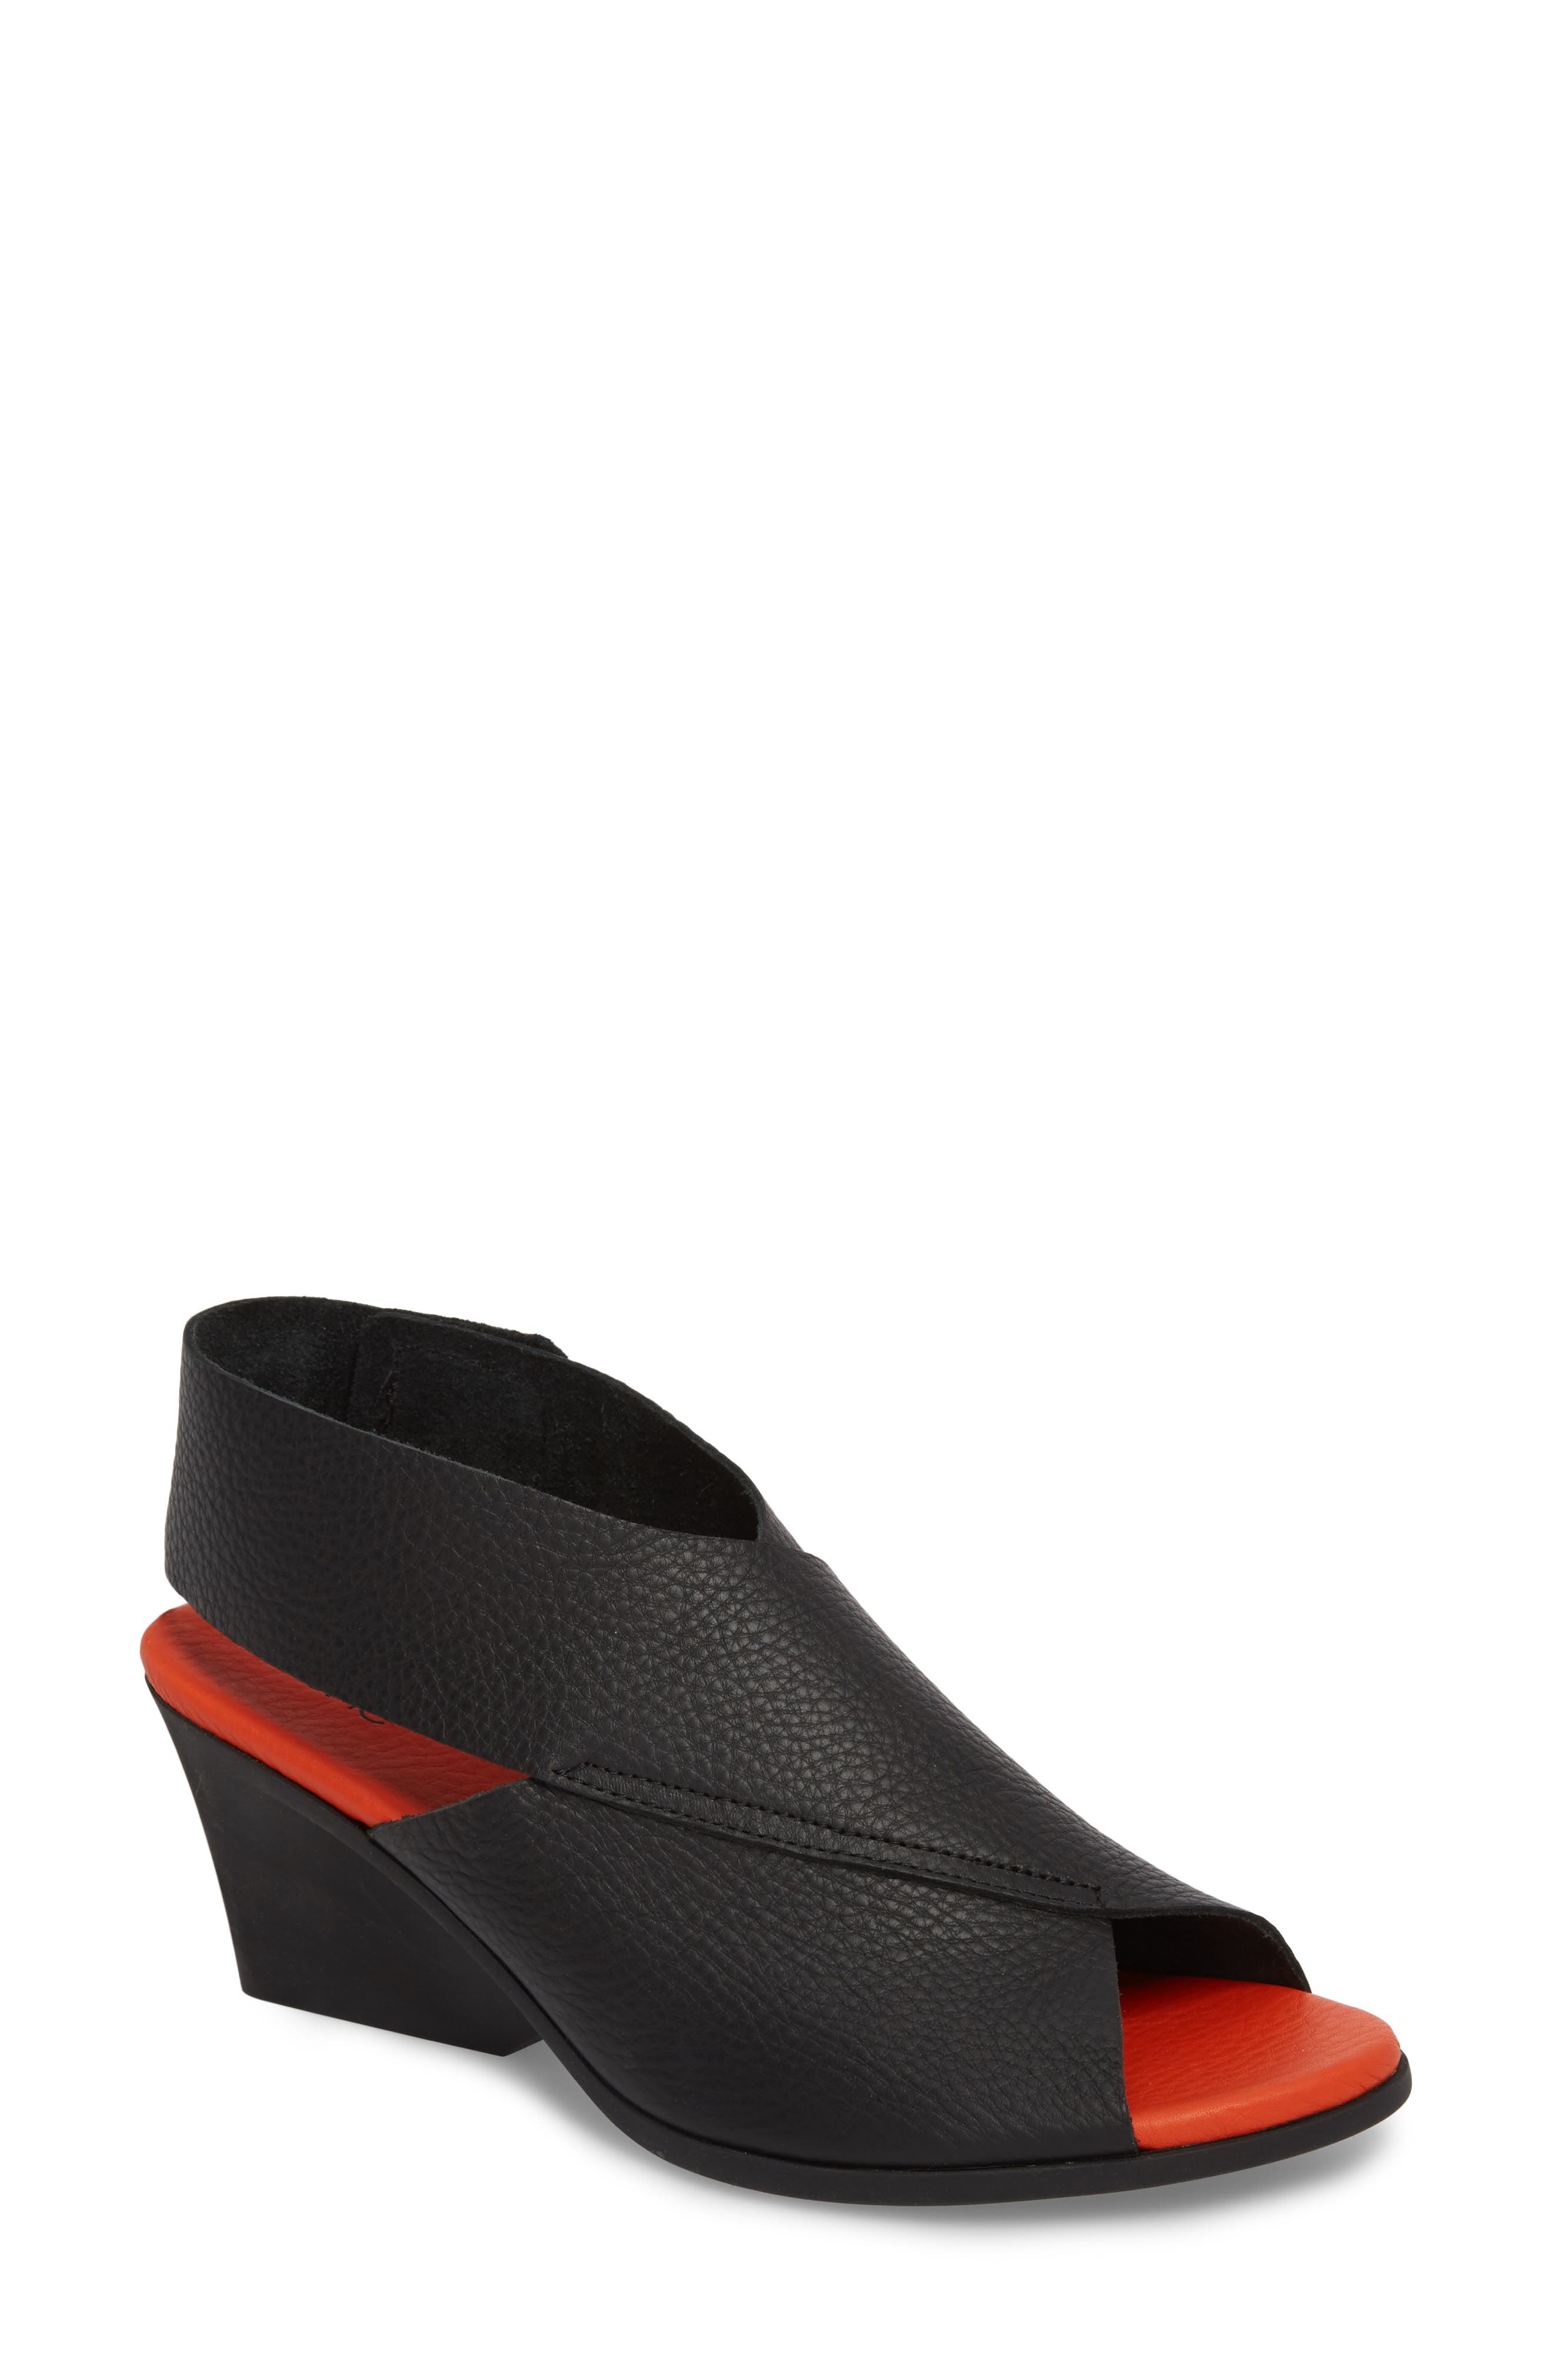 Ritual Wedge Sandal,                             Main thumbnail 1, color,                             Noir/ Paradis Leather